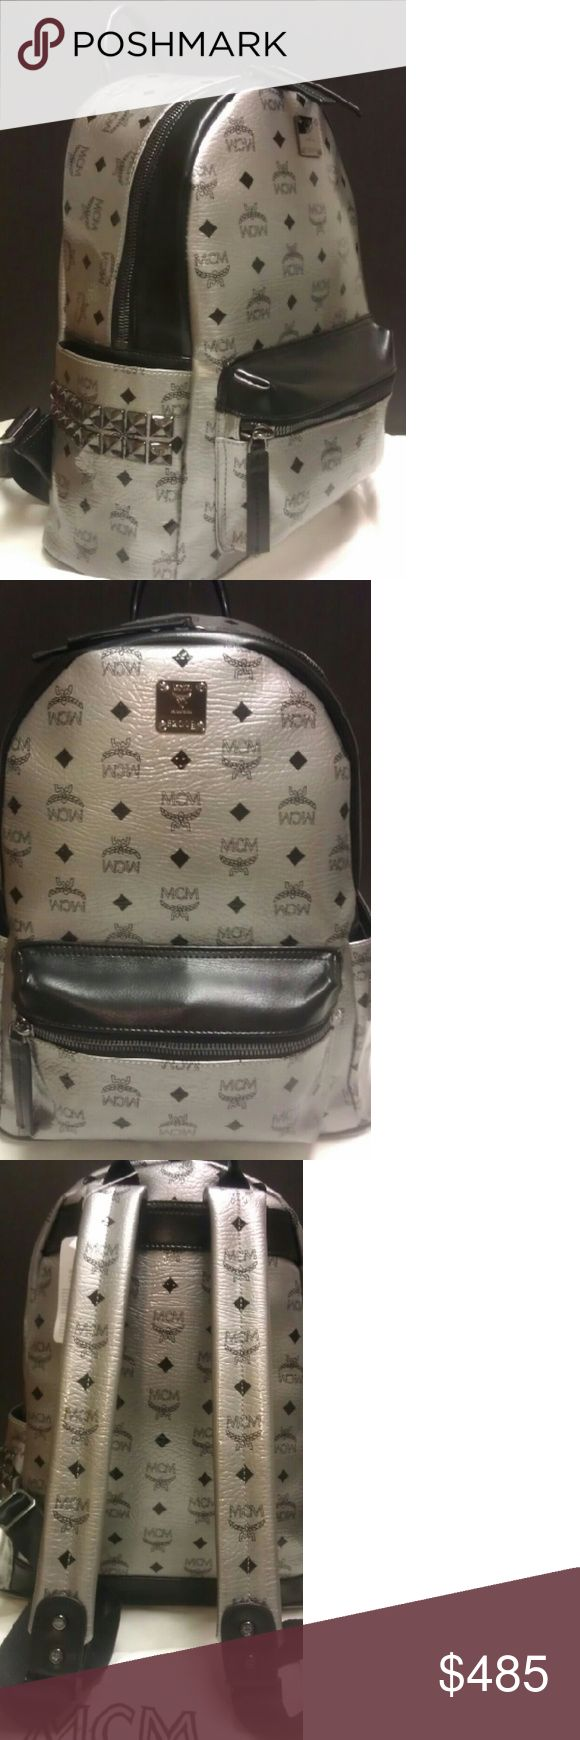 "MCM Mettalic Grey & Black studded Medium Backpack Excellent New condition MCM Mettalic Grey & Black studded Medium size Backpack. Price is Firm  ?11"" tablet laptop compartment ?cell phone pockets ?2 side pockets ?1 inside zipped pocket ?large cabin space ?1 outer zipped pocket ?MCM dust bag included MCM Bags Backpacks"